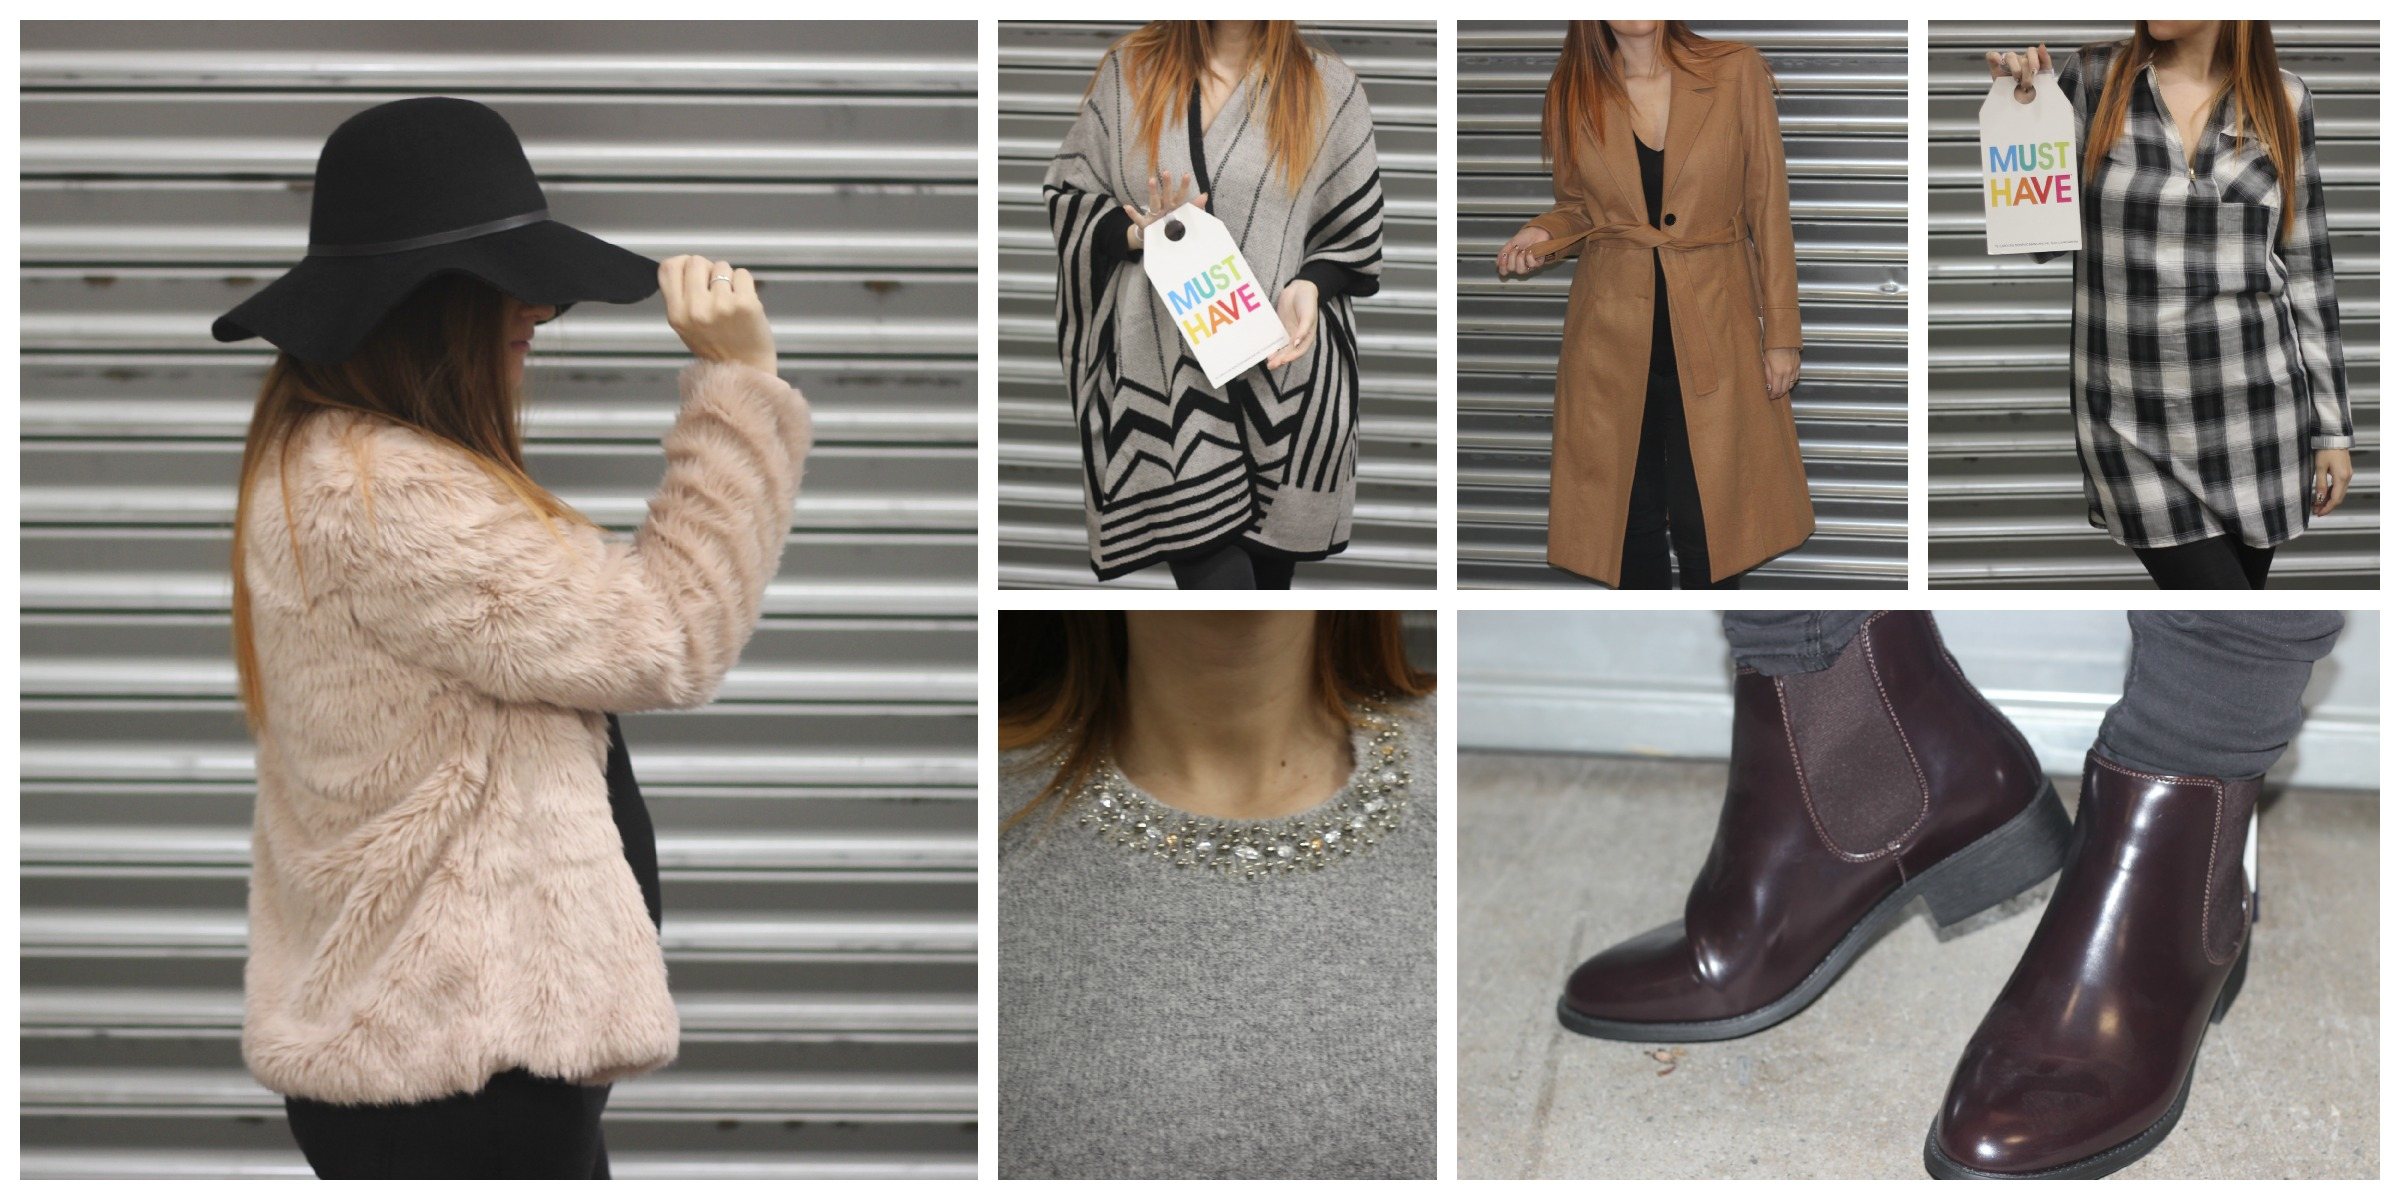 must have autunno inverno 2015 16 kiabi fashion guide elisabetta bertolini blog di moda